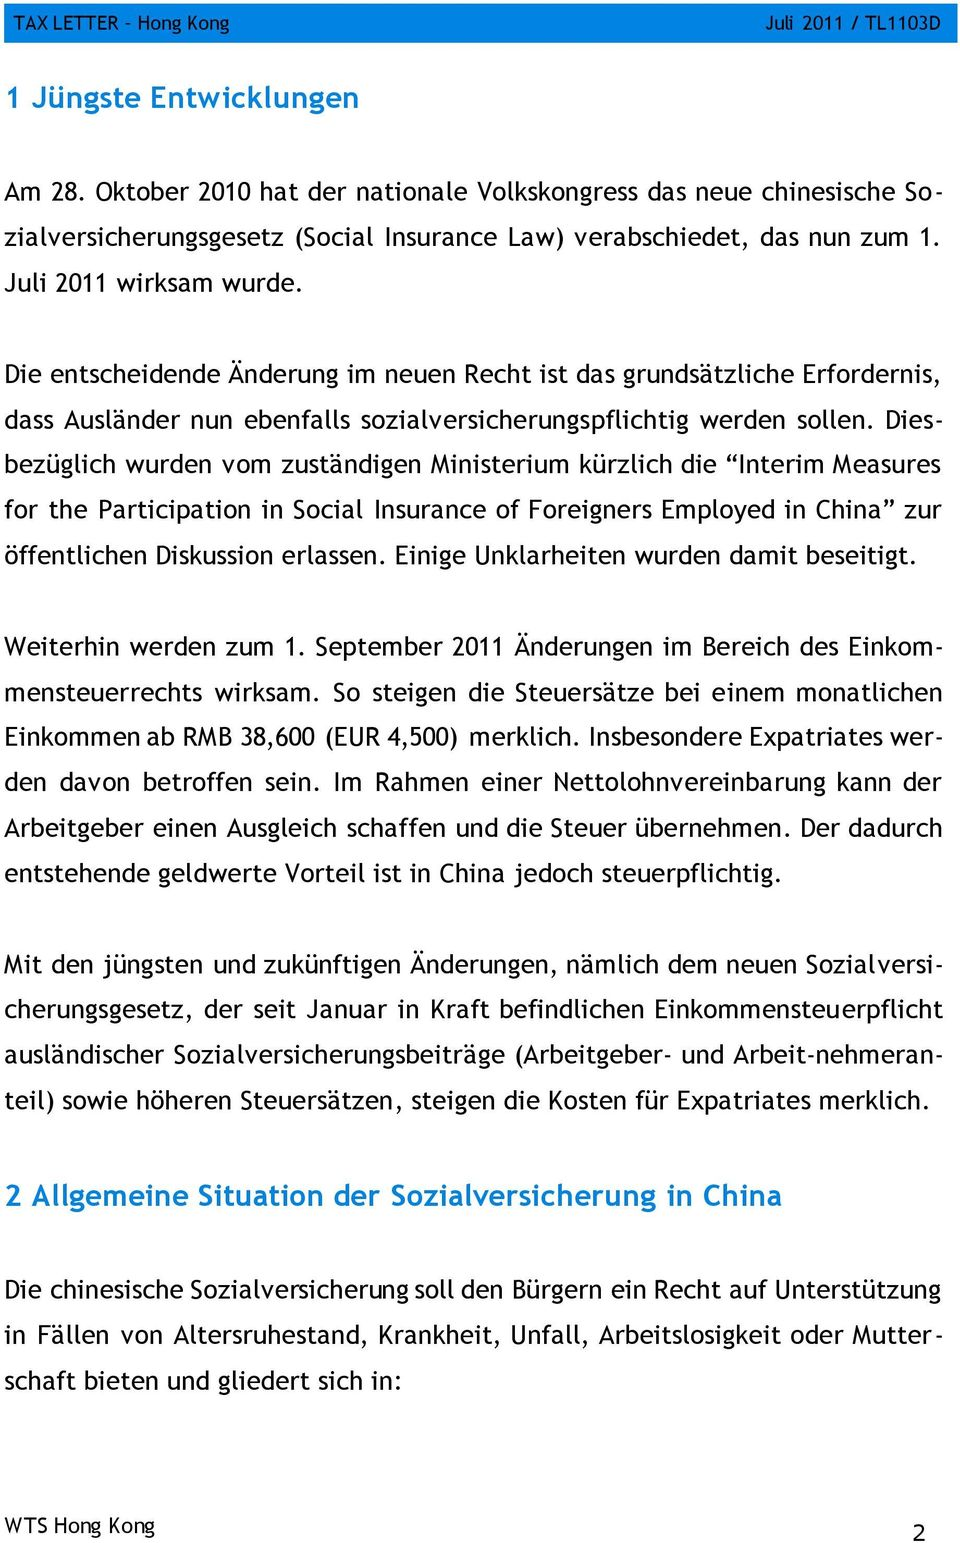 Diesbezüglich wurden vom zuständigen Ministerium kürzlich die Interim Measures for the Participation in Social Insurance of Foreigners Employed in China zur öffentlichen Diskussion erlassen.